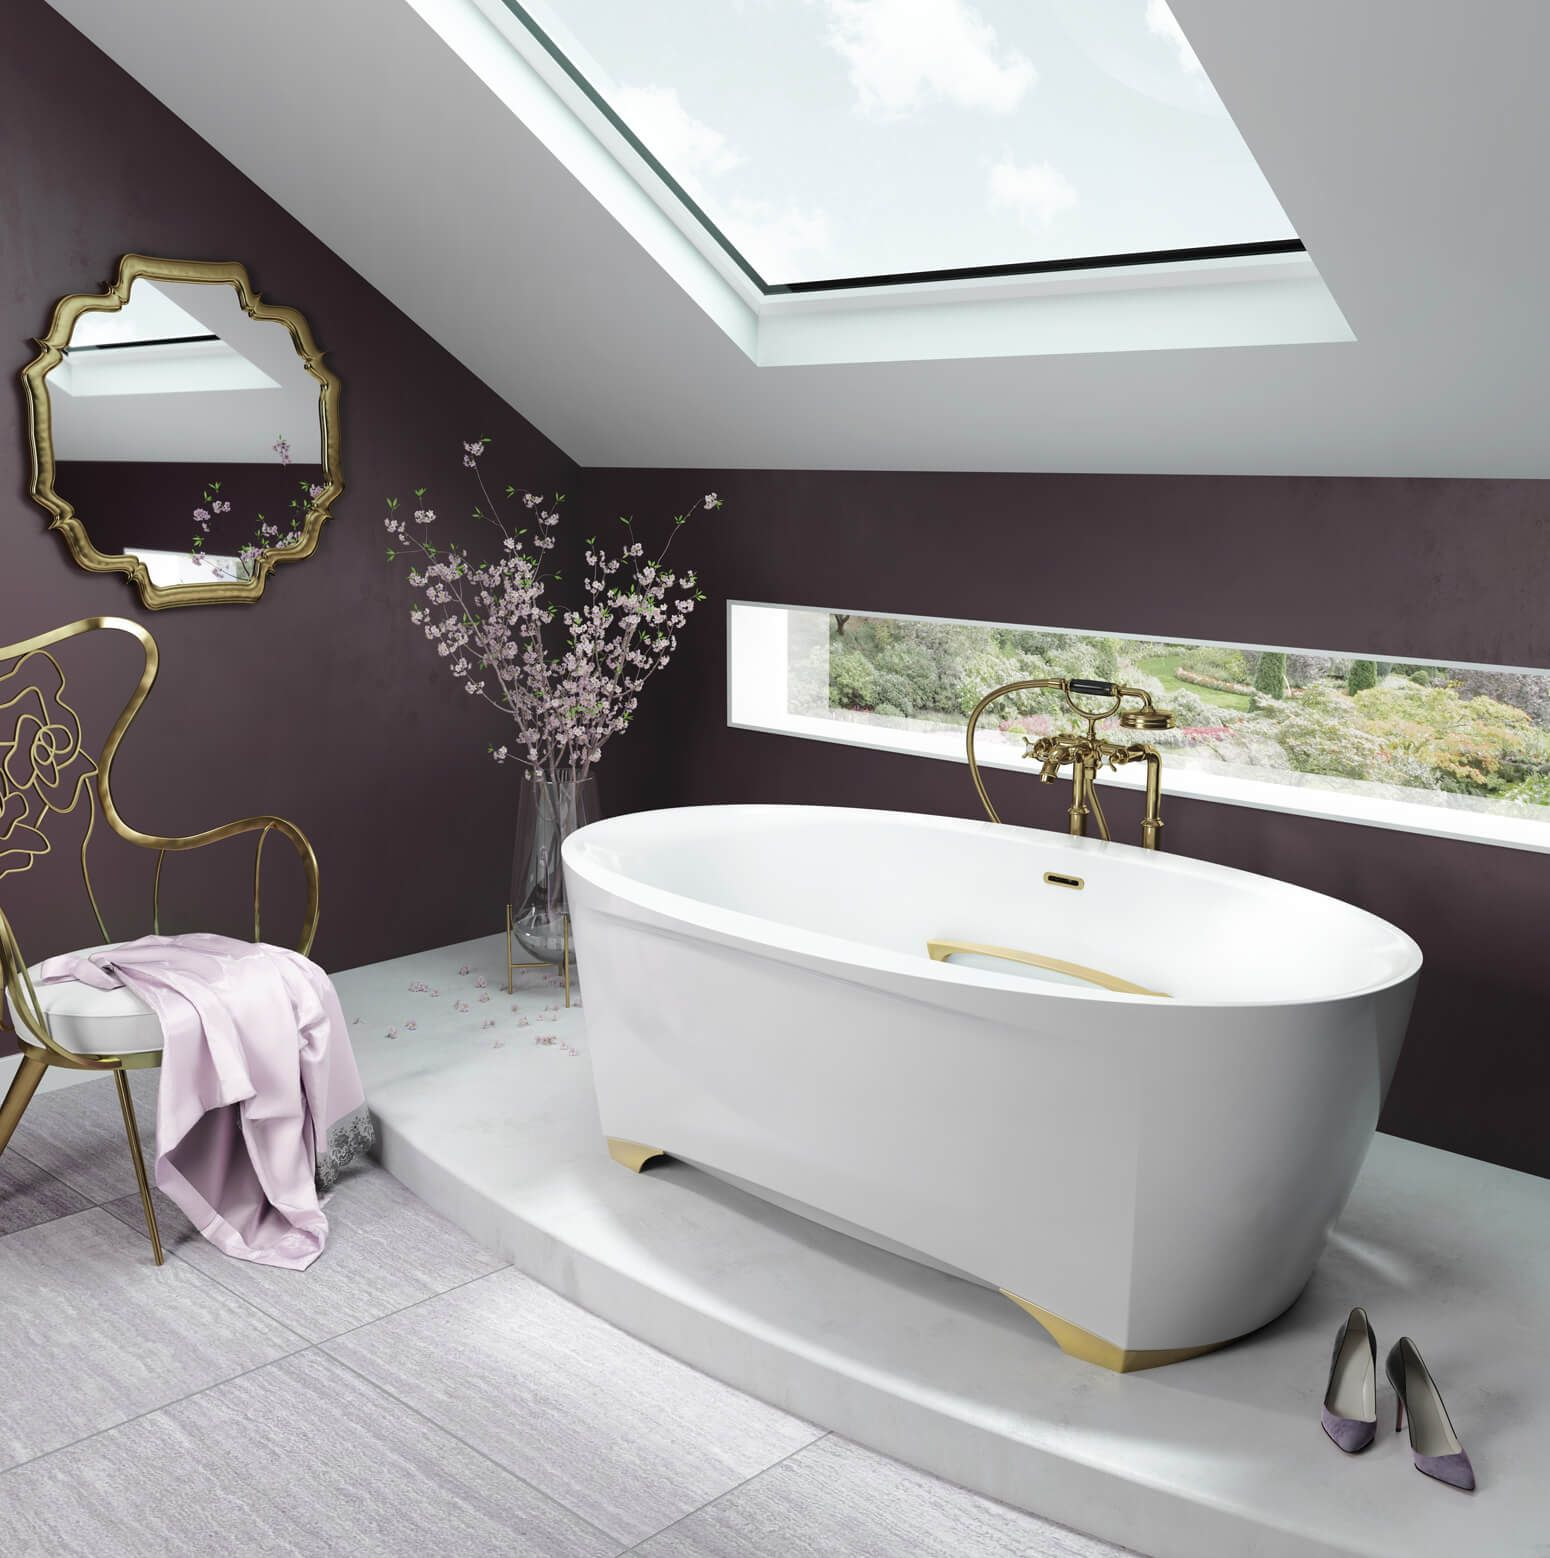 Scala 6638 Free Standing Bath Tub Bathrooms Remodel Jetted